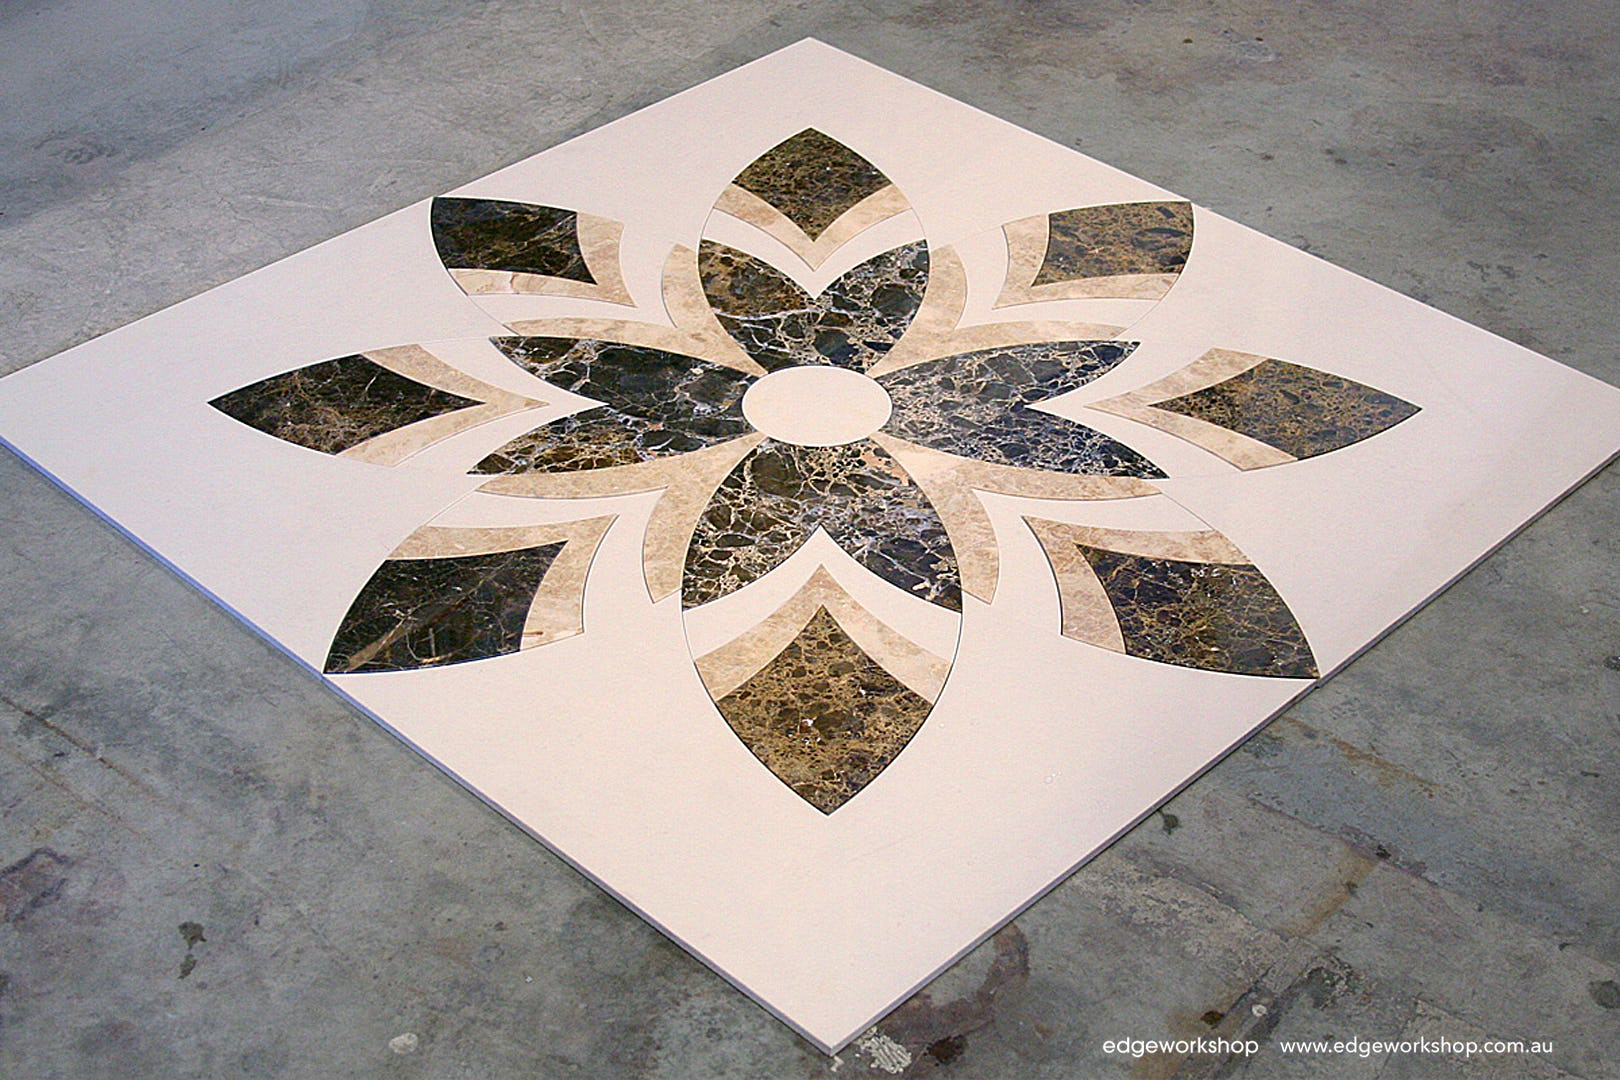 Stone ceramic tile inlays edgeworkshop show details dailygadgetfo Image collections